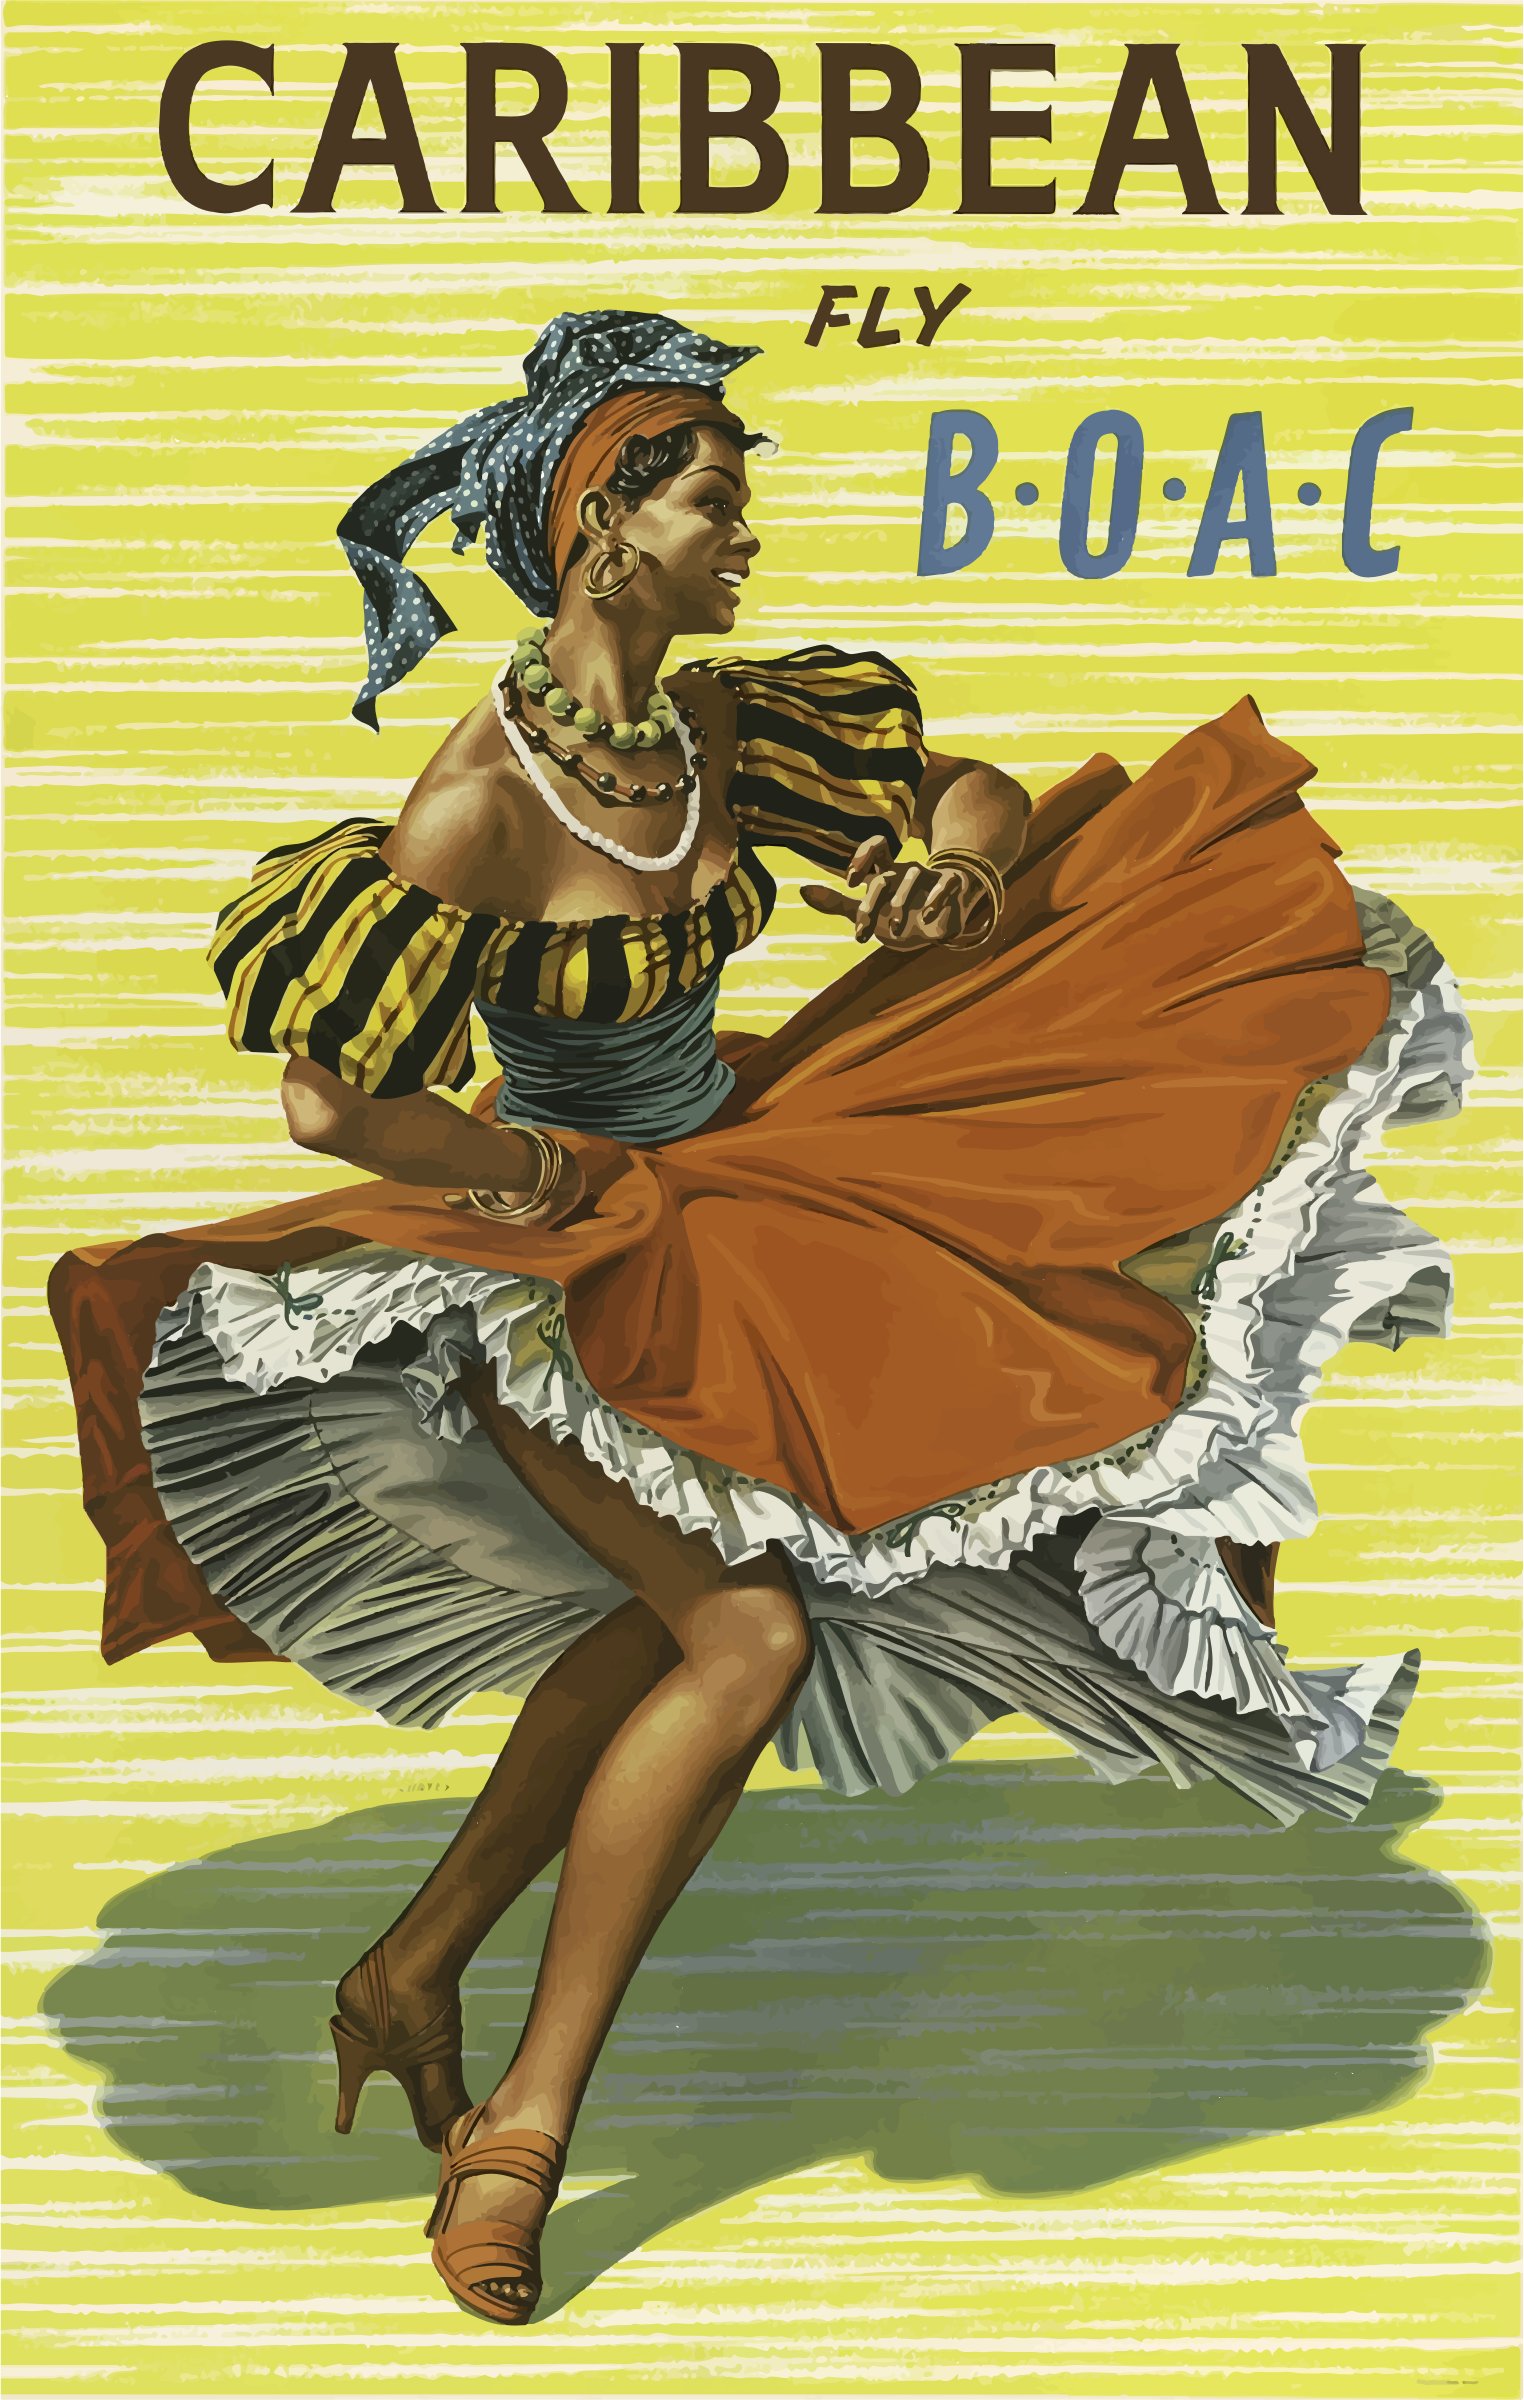 Vintage Travel Poster Caribbean by GDJ